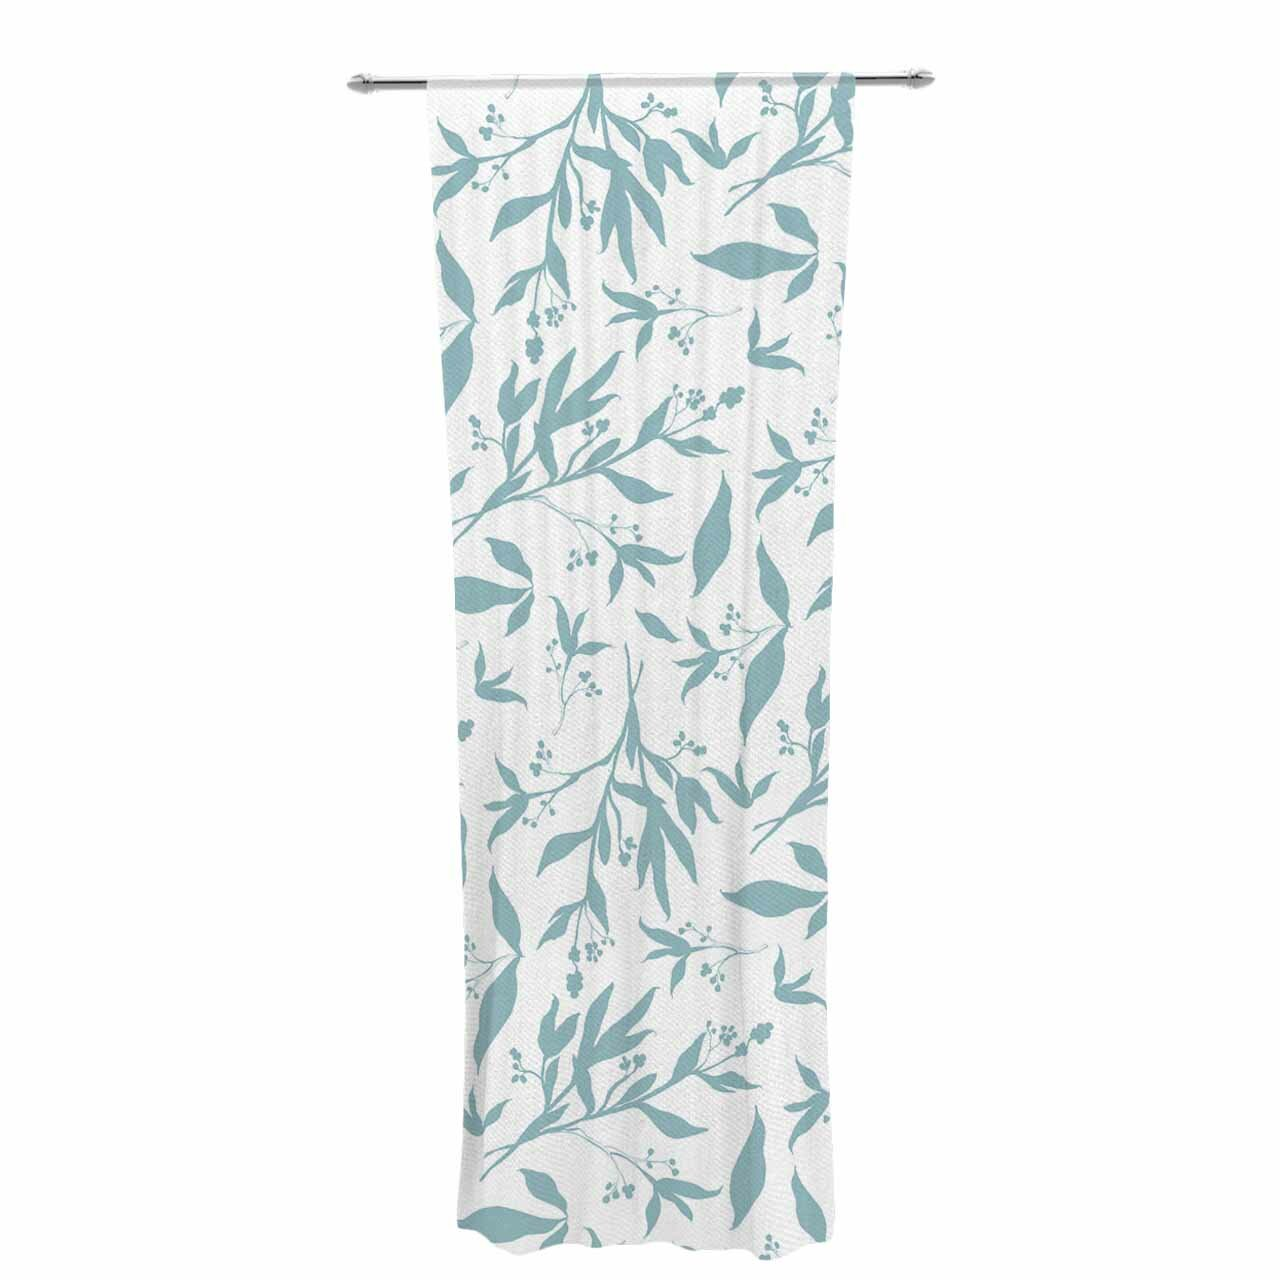 East Urban Home Zara Martina Leafy Silhouettes Nature Floral Sheer Rod Pocket Curtain Panels Reviews